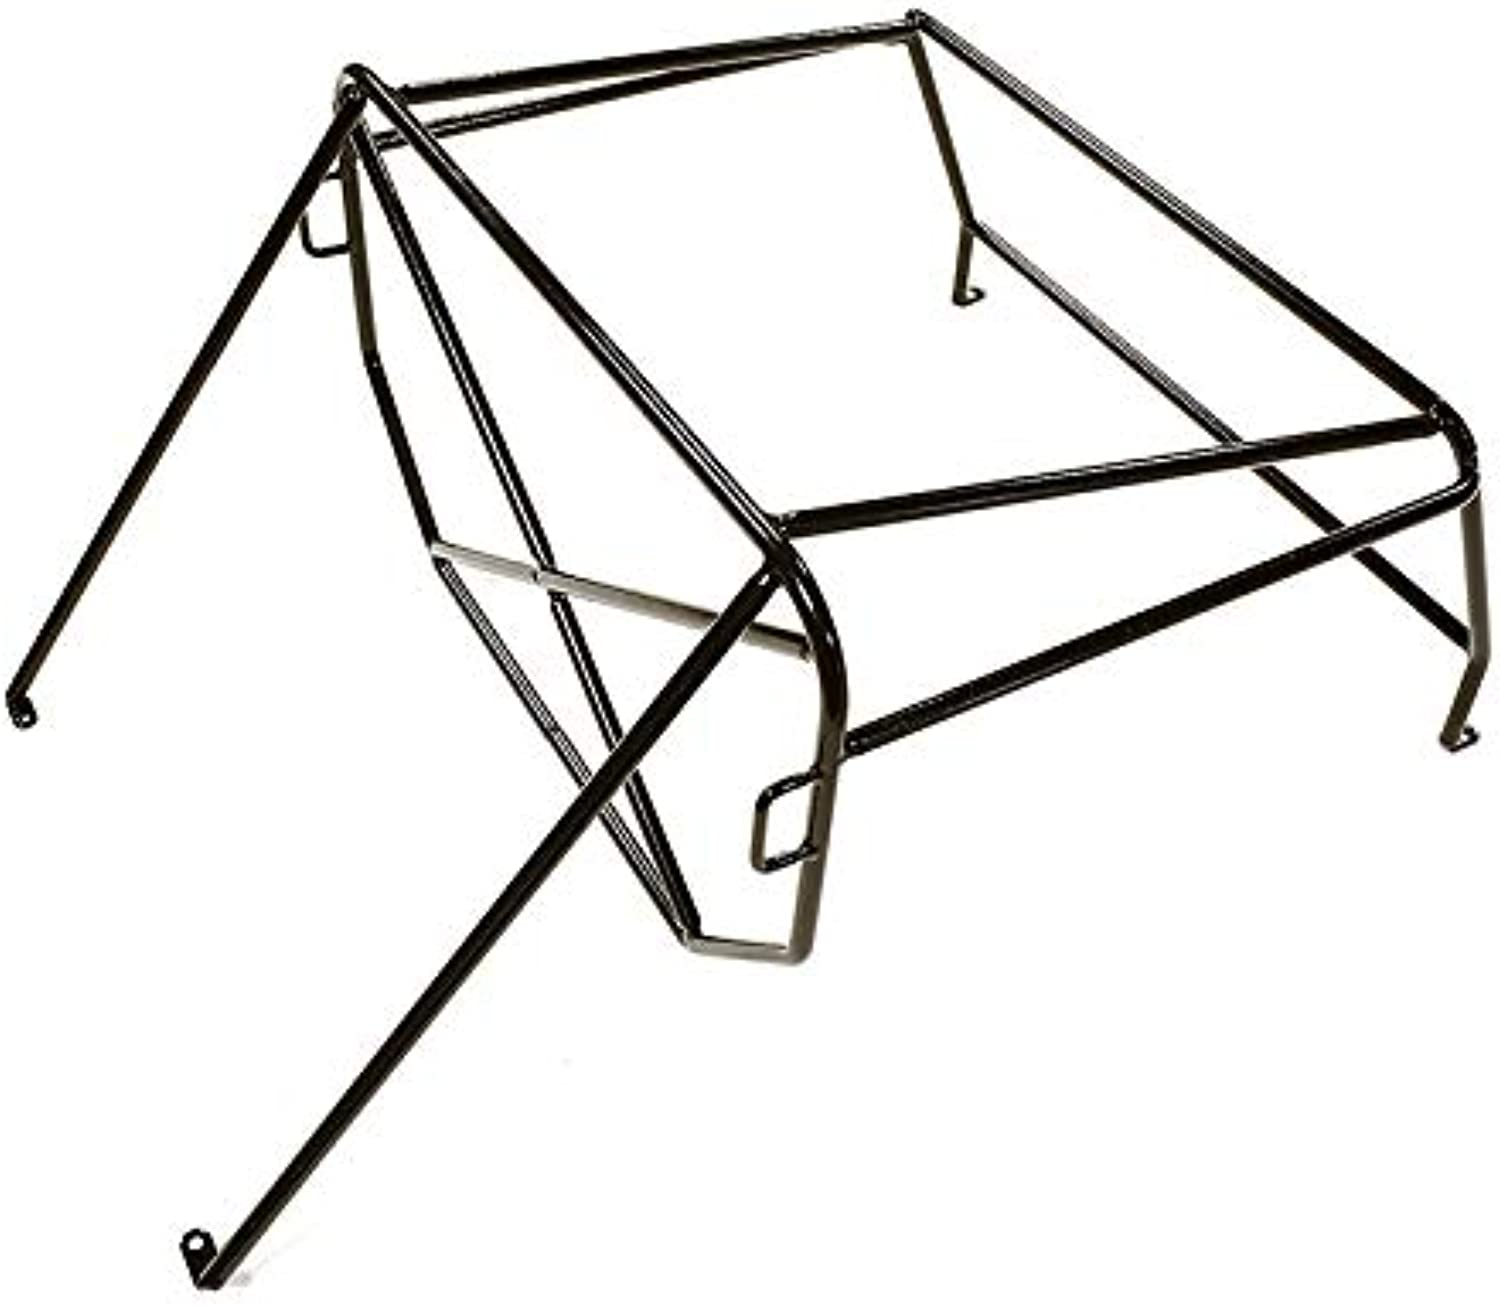 Integy RC Model Hop-ups C28321BLACK Realistic Outer Roll Cage for 1 10 D90 Pickup Gen-2 Scale Body